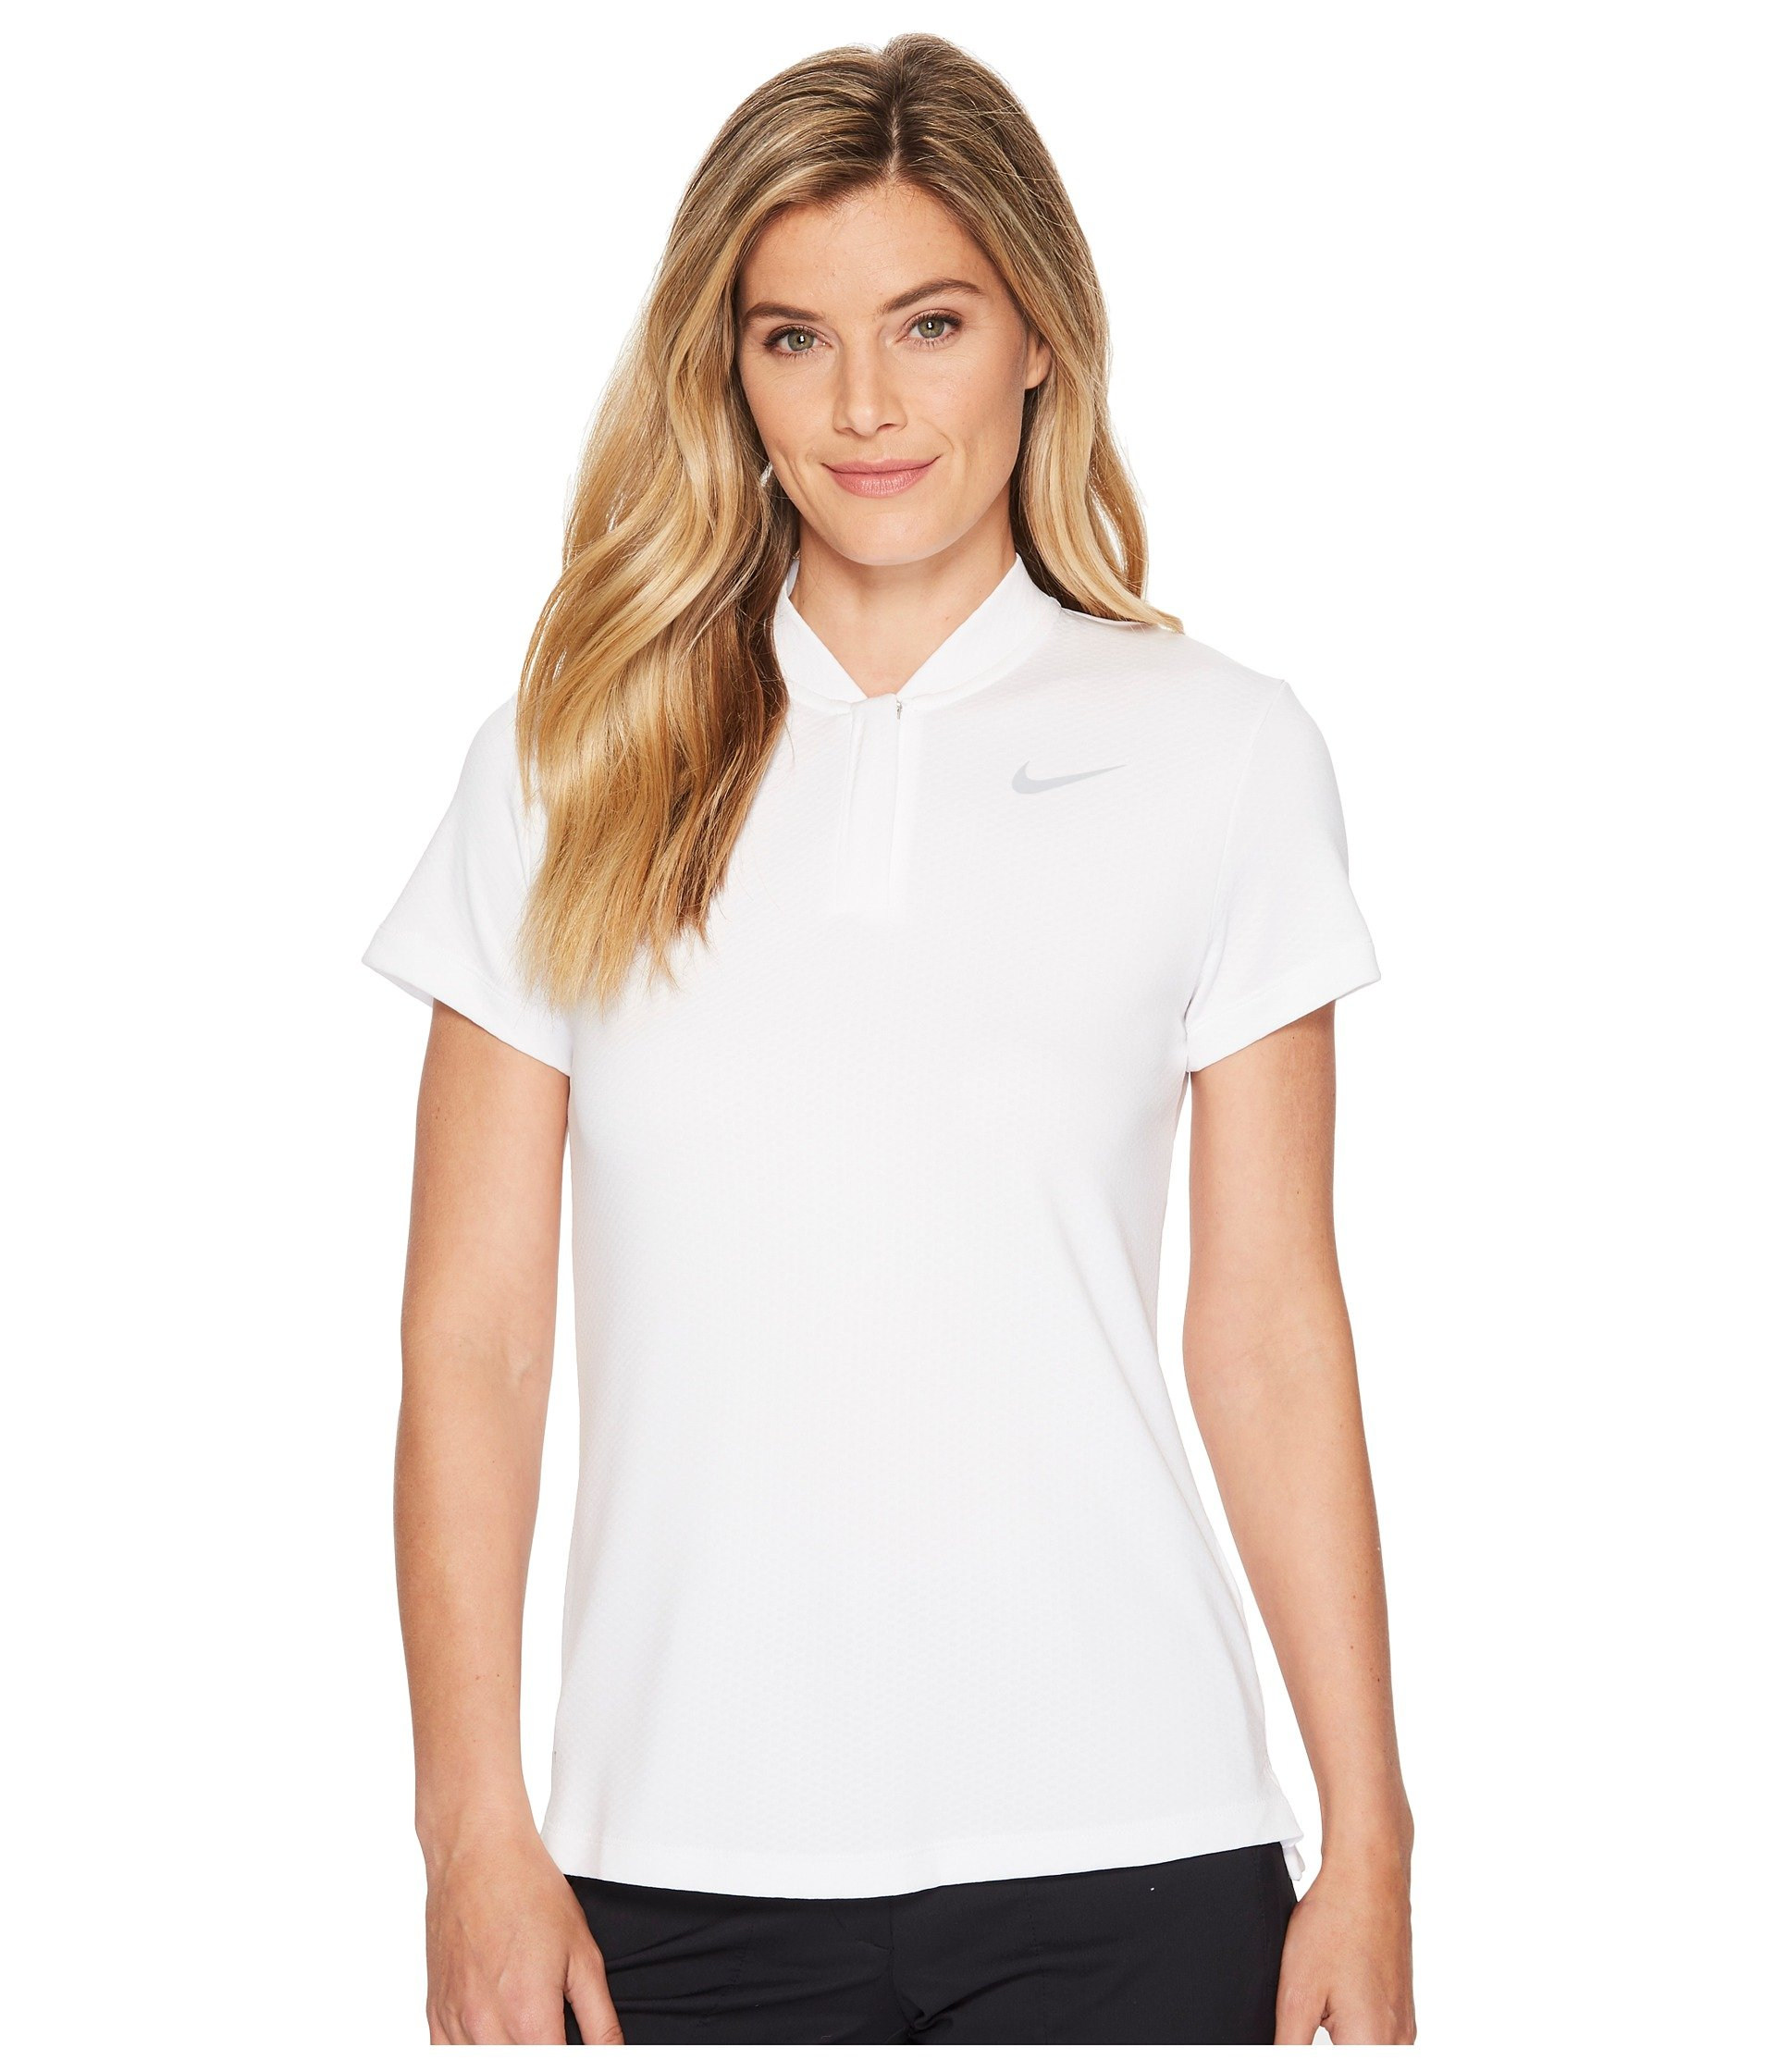 NIKE Women's Dry Short Sleeve Blade Golf Polo, White/Flat Silver, X-Small